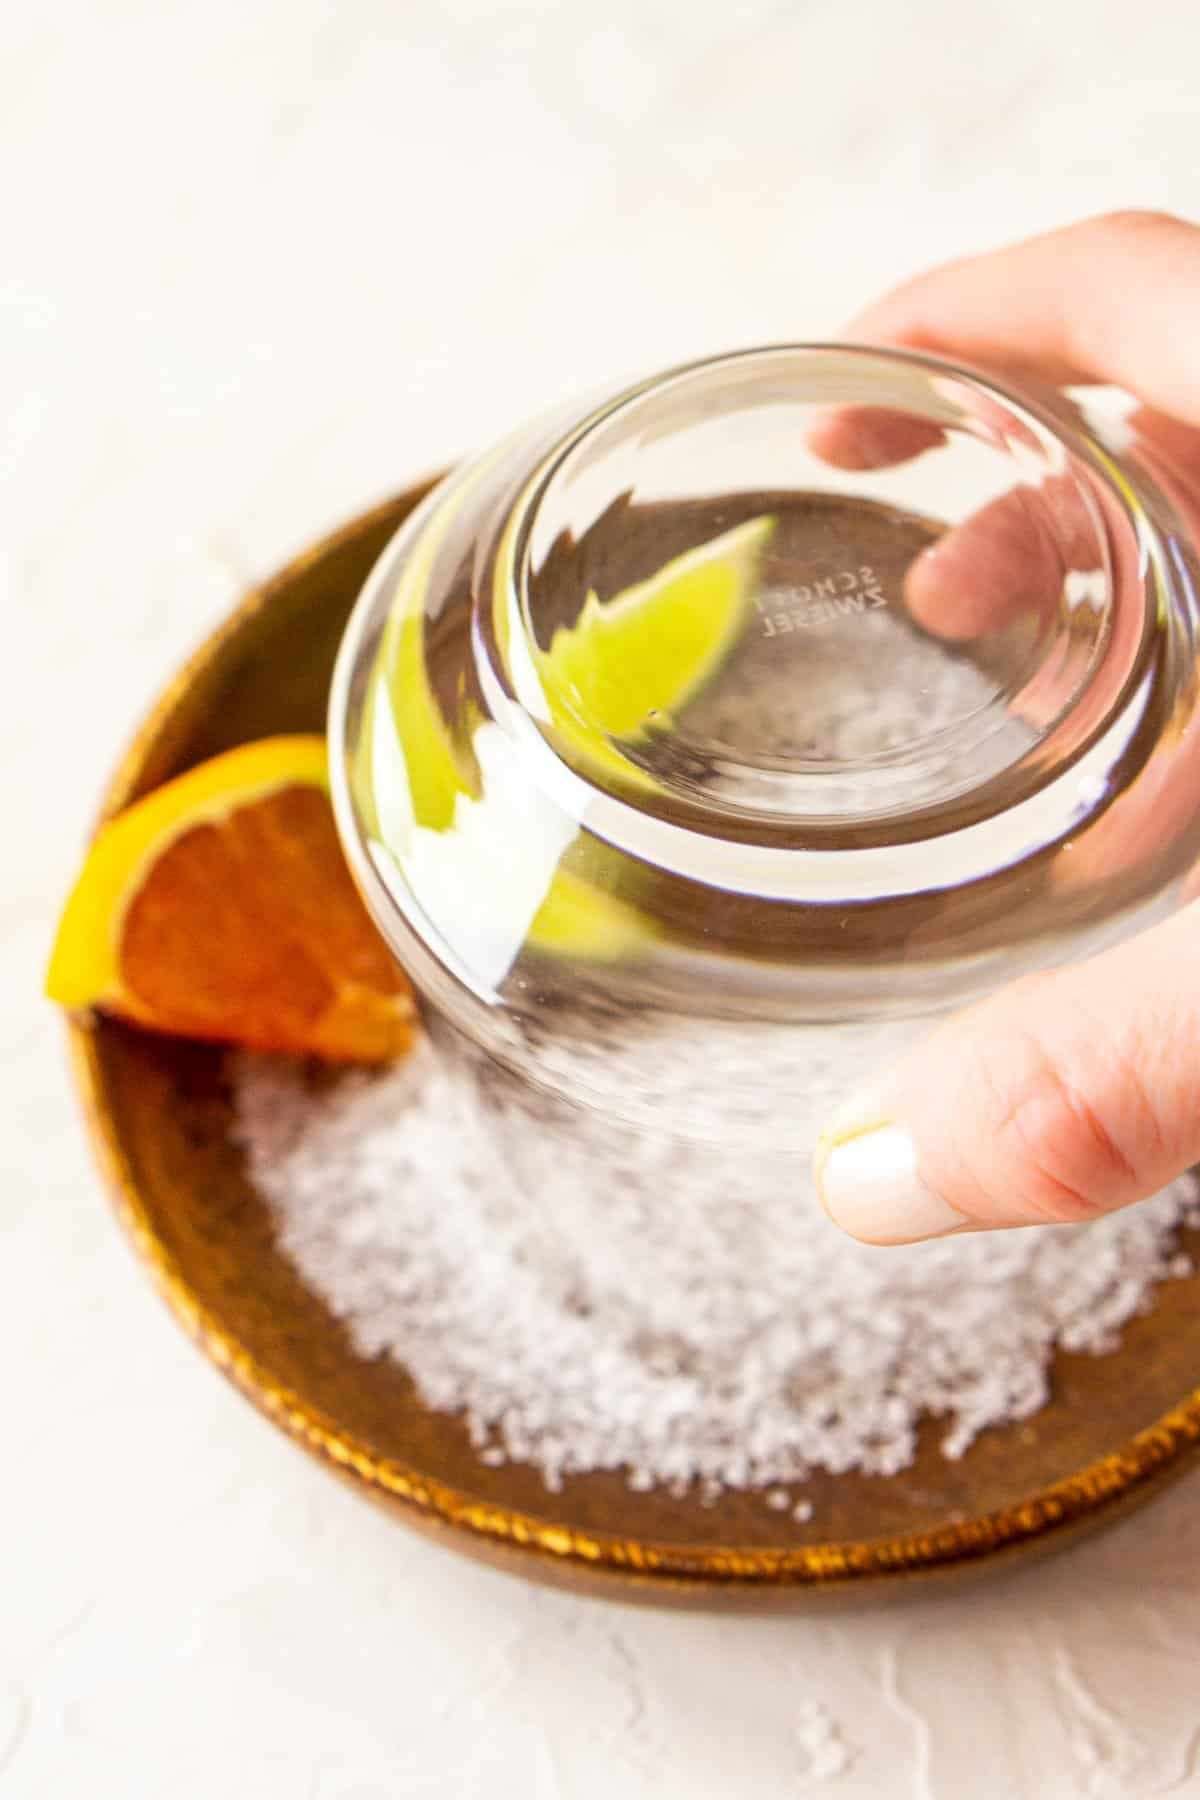 A glass in a plate of salt to show the process of how to rim a margarita glass with salt.